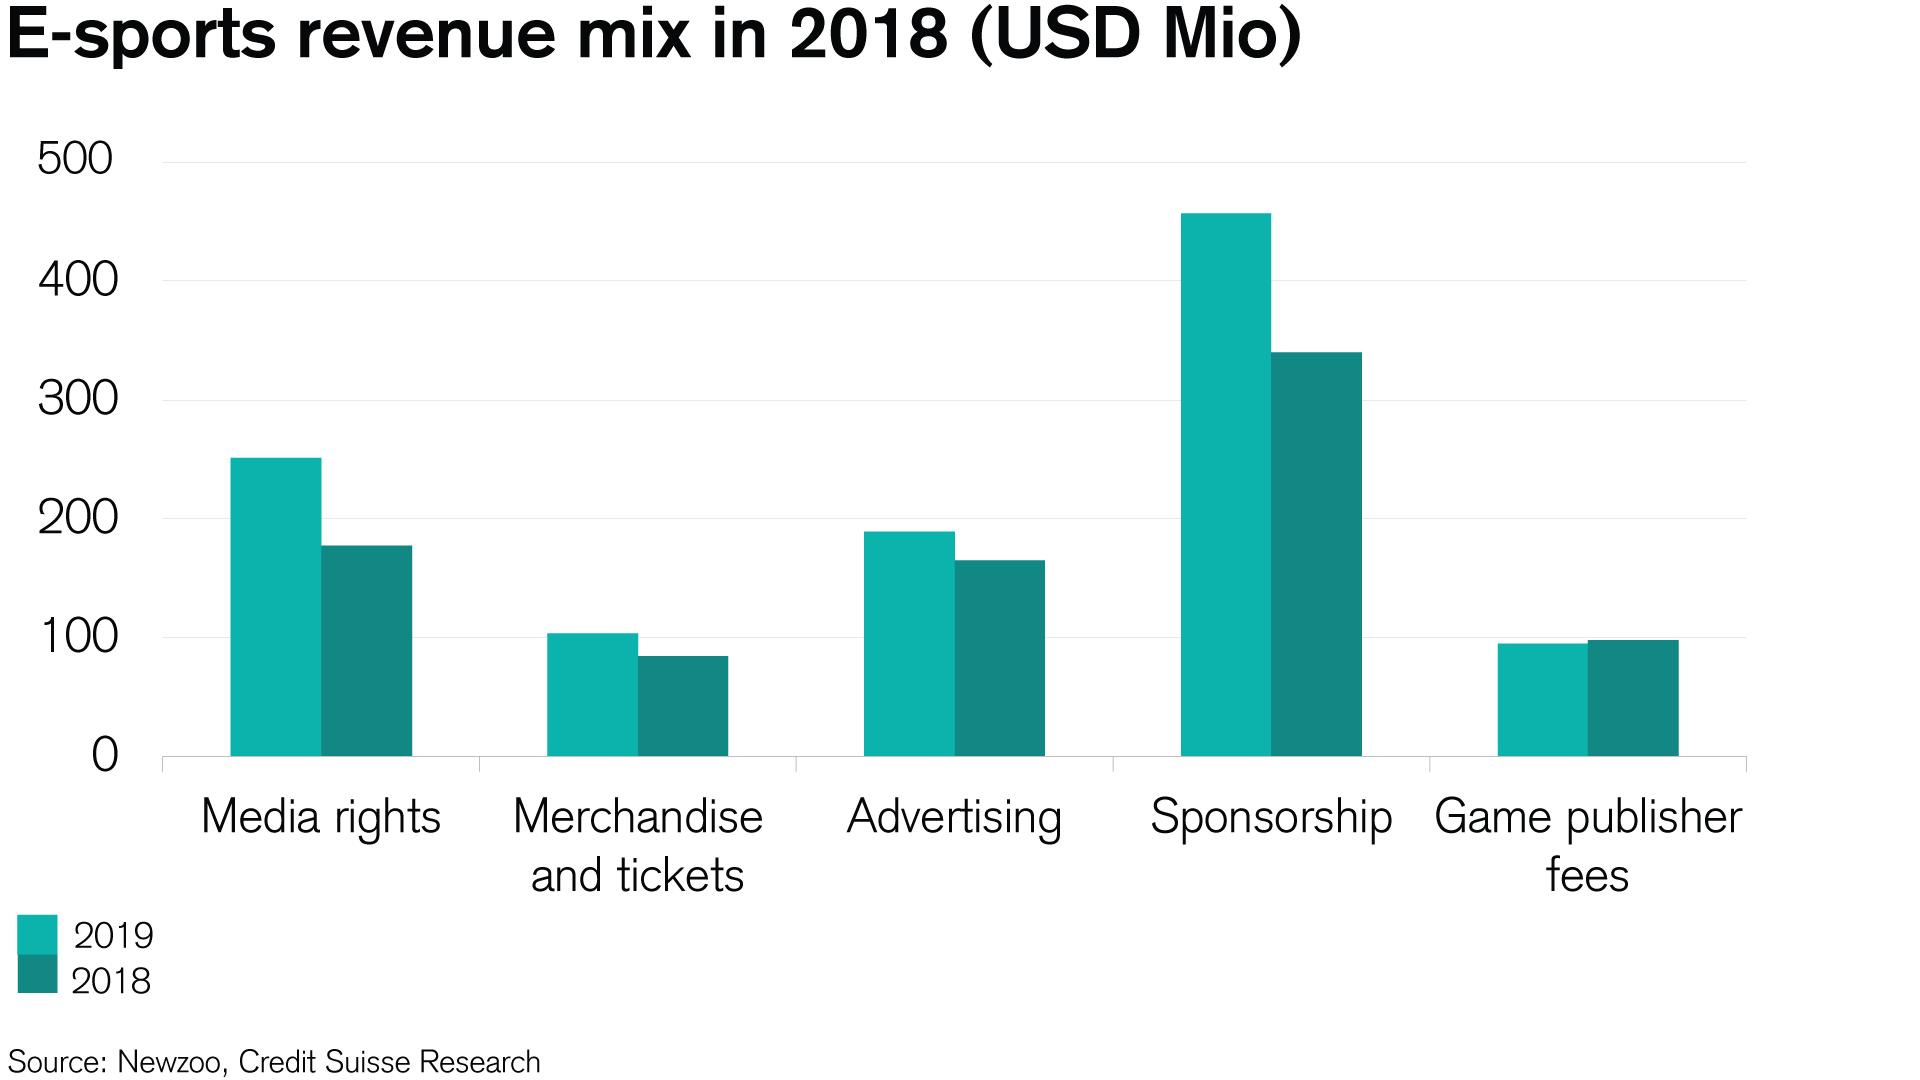 Annual gaming revenue per user in 2018